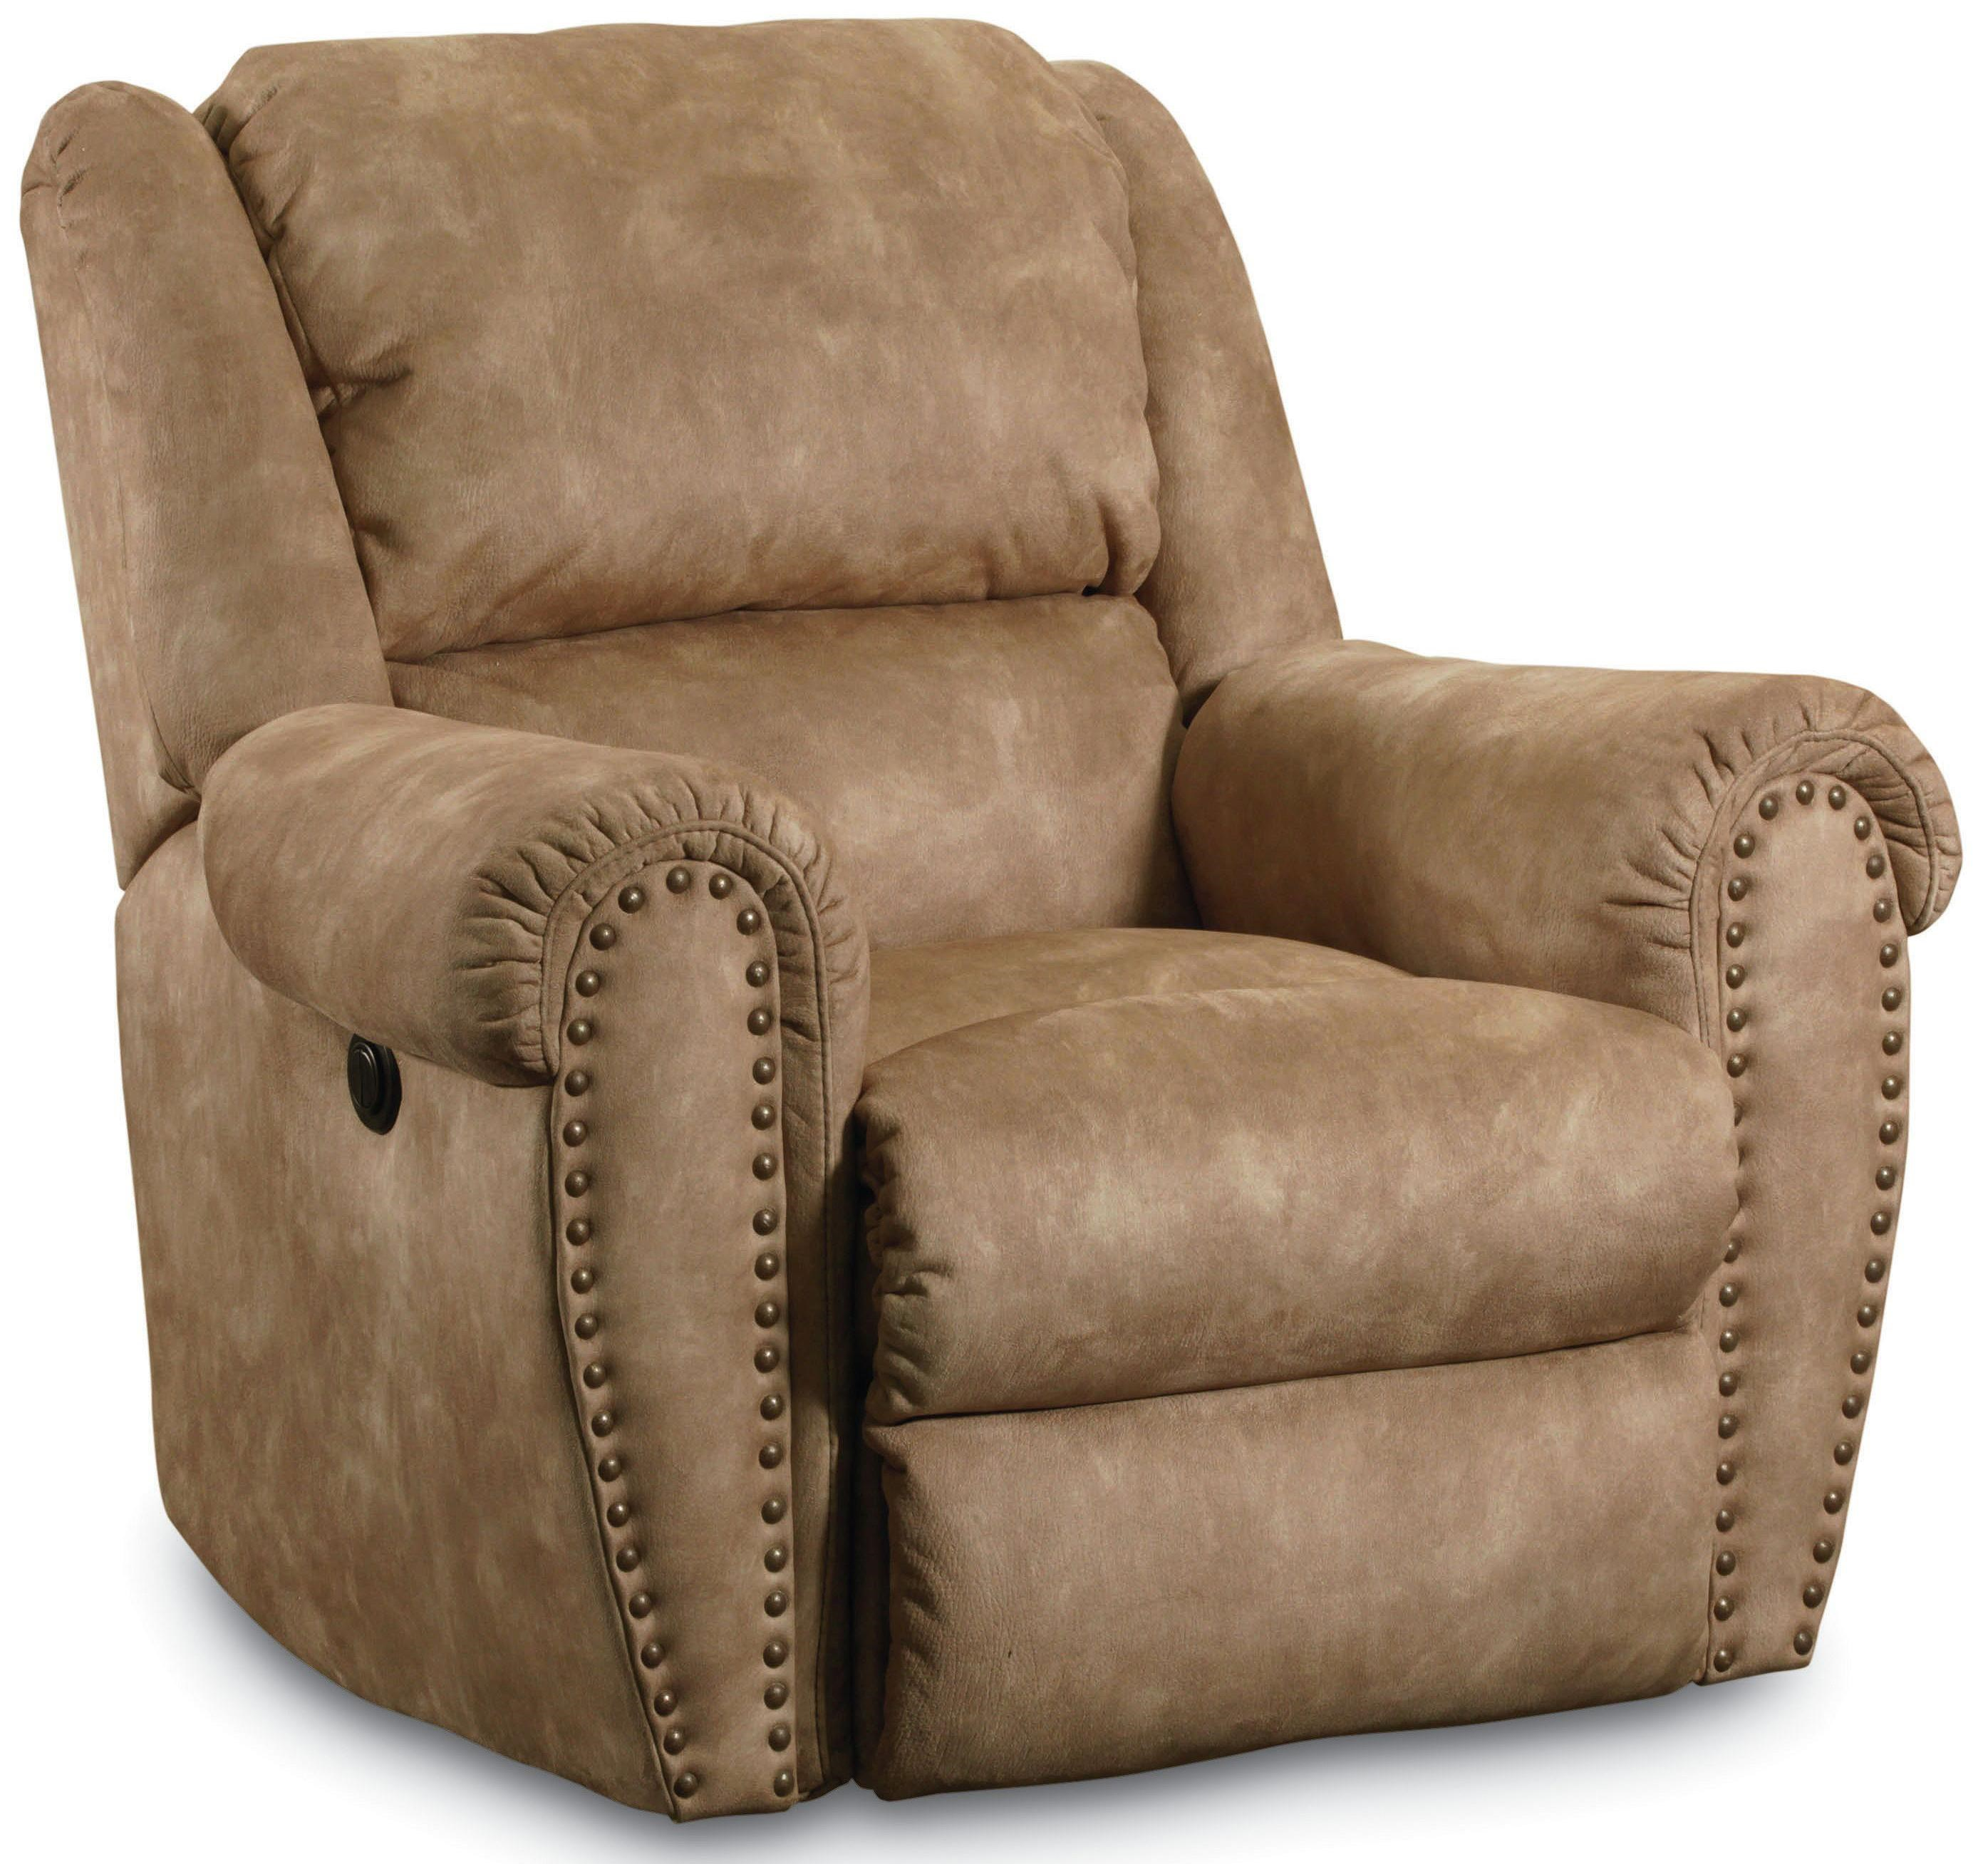 Lane Summerlin Traditional Rocker Recliner with Nail Head Trim Accents  sc 1 st  Lindyu0027s Furniture Company & Lane Summerlin Traditional Rocker Recliner with Nail Head Trim ... islam-shia.org